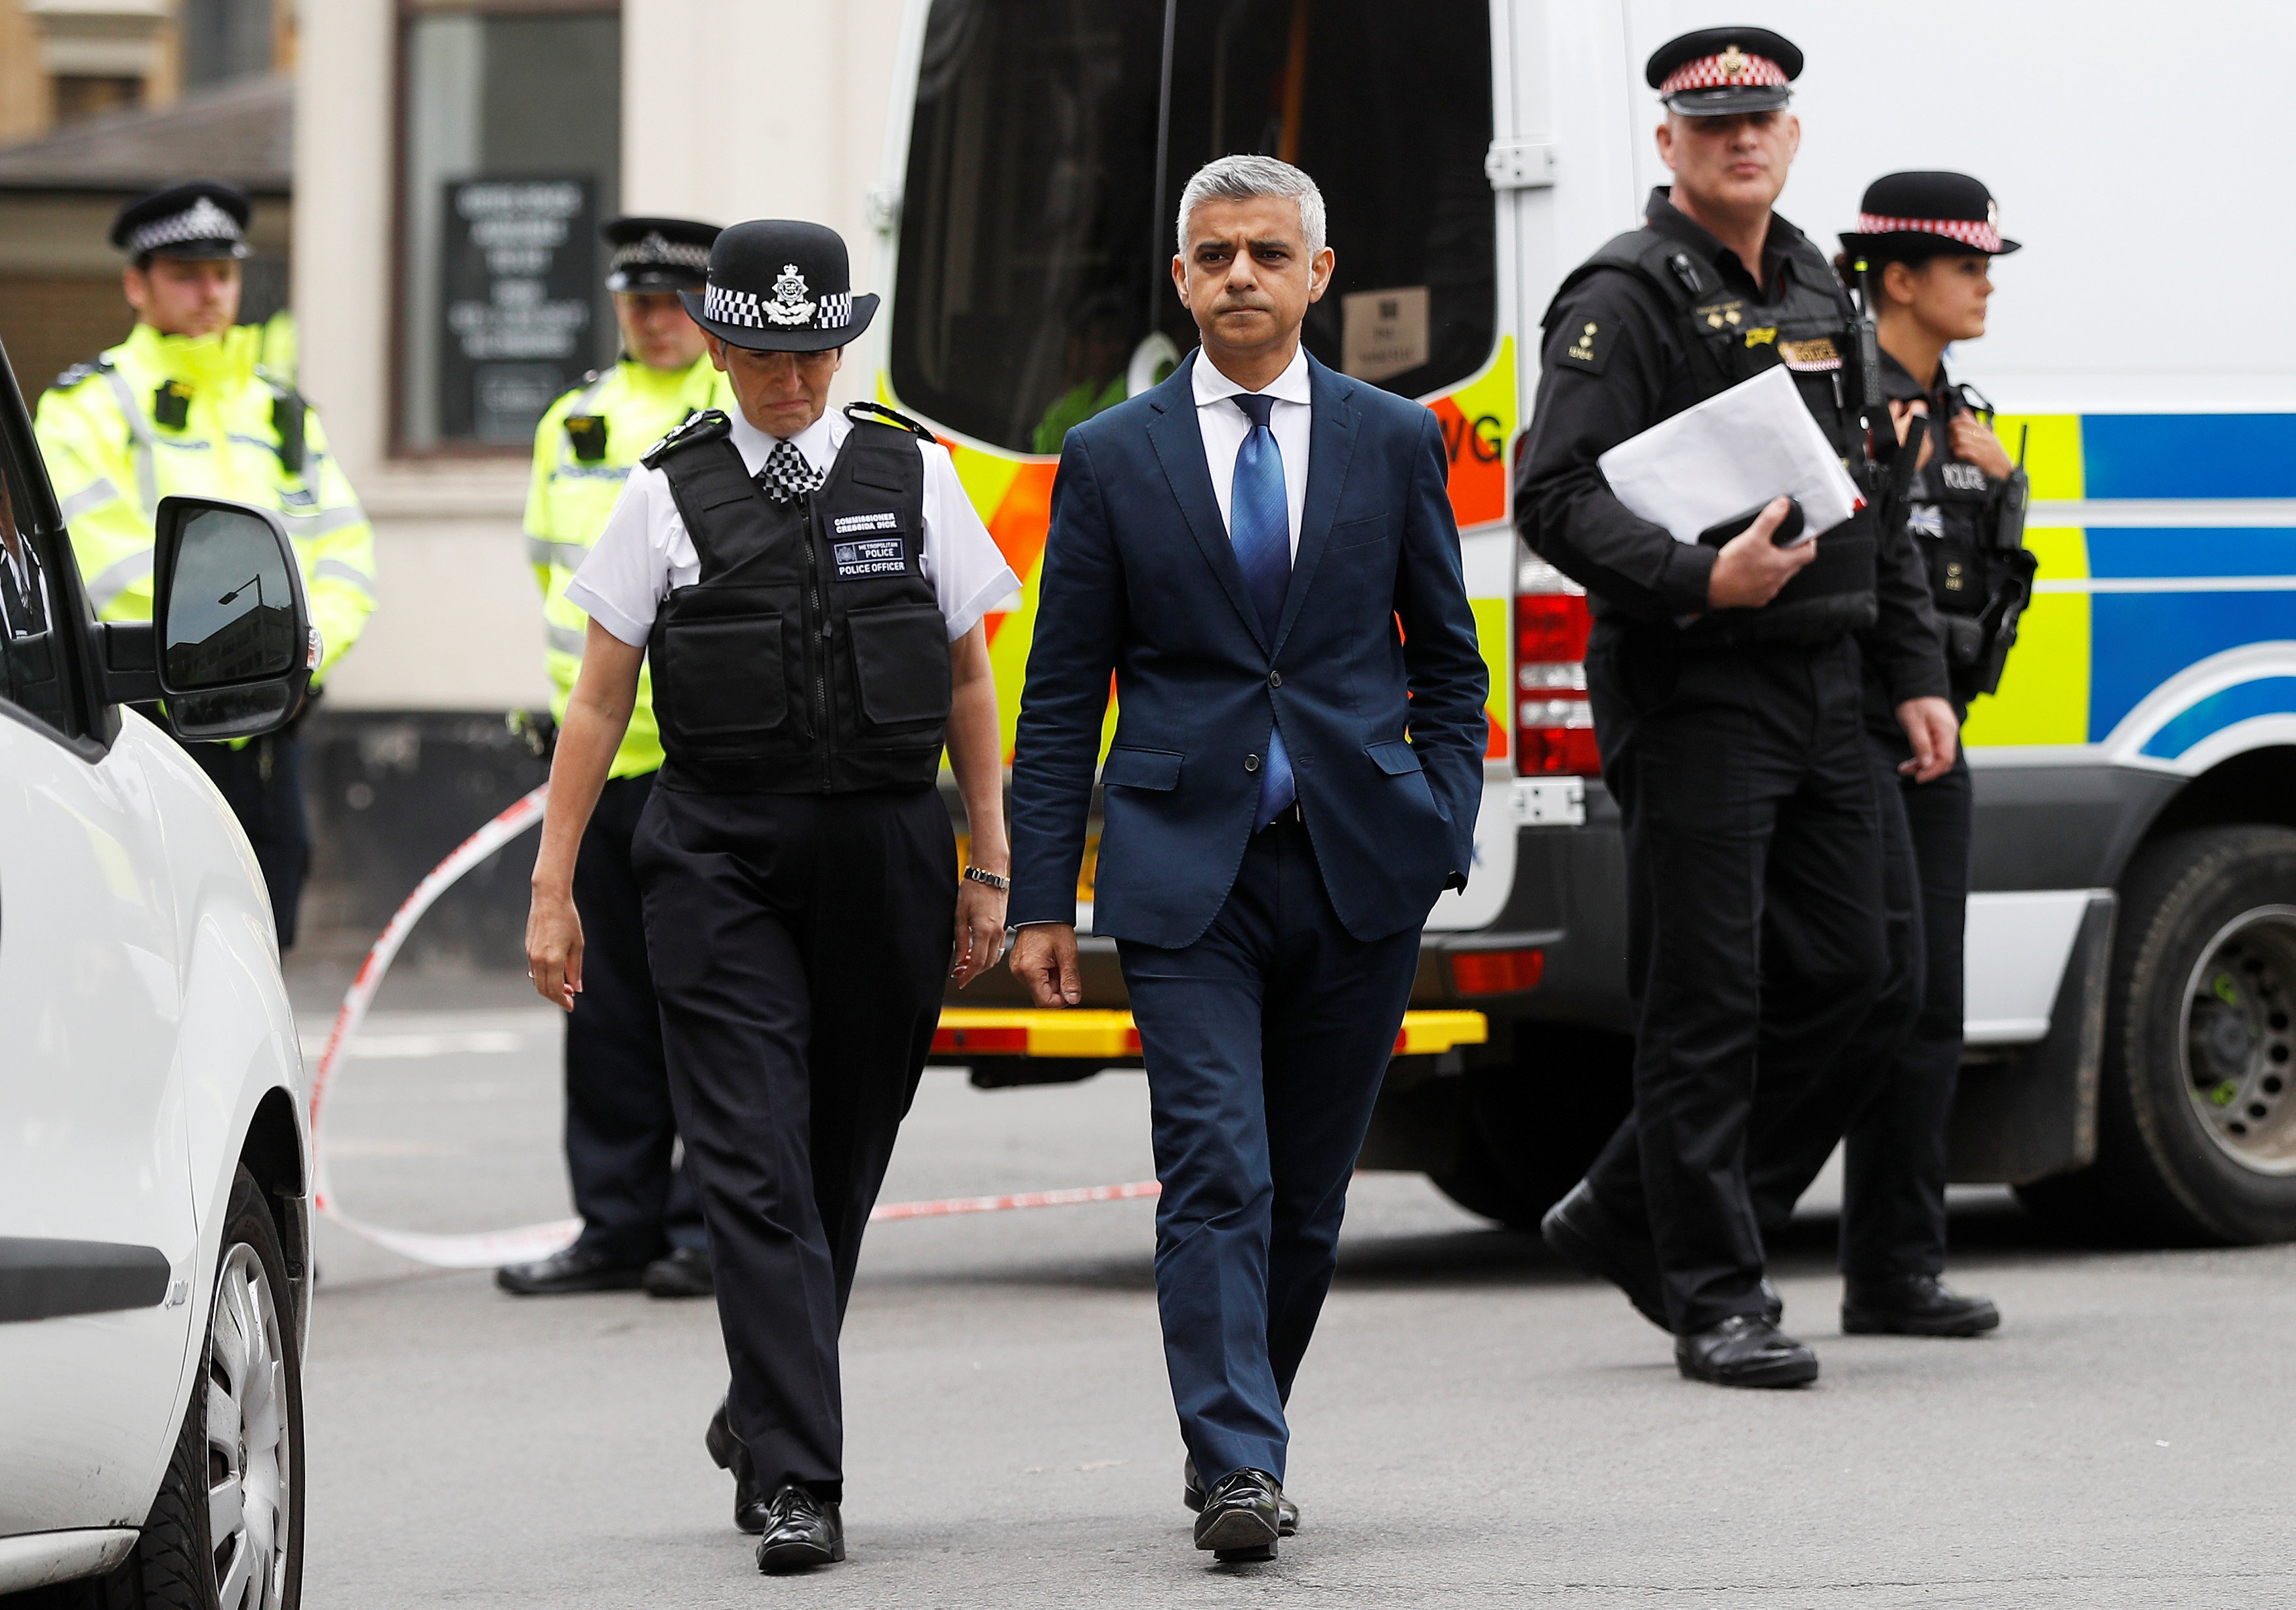 Mayor of London Sadiq Khan and Metropolitan Police Commissioner Cressida Dick visit the scene of the attack on London Bridge and Borough Market which left 7 people dead and dozens of injured in central London, Britain, June 5, 2017